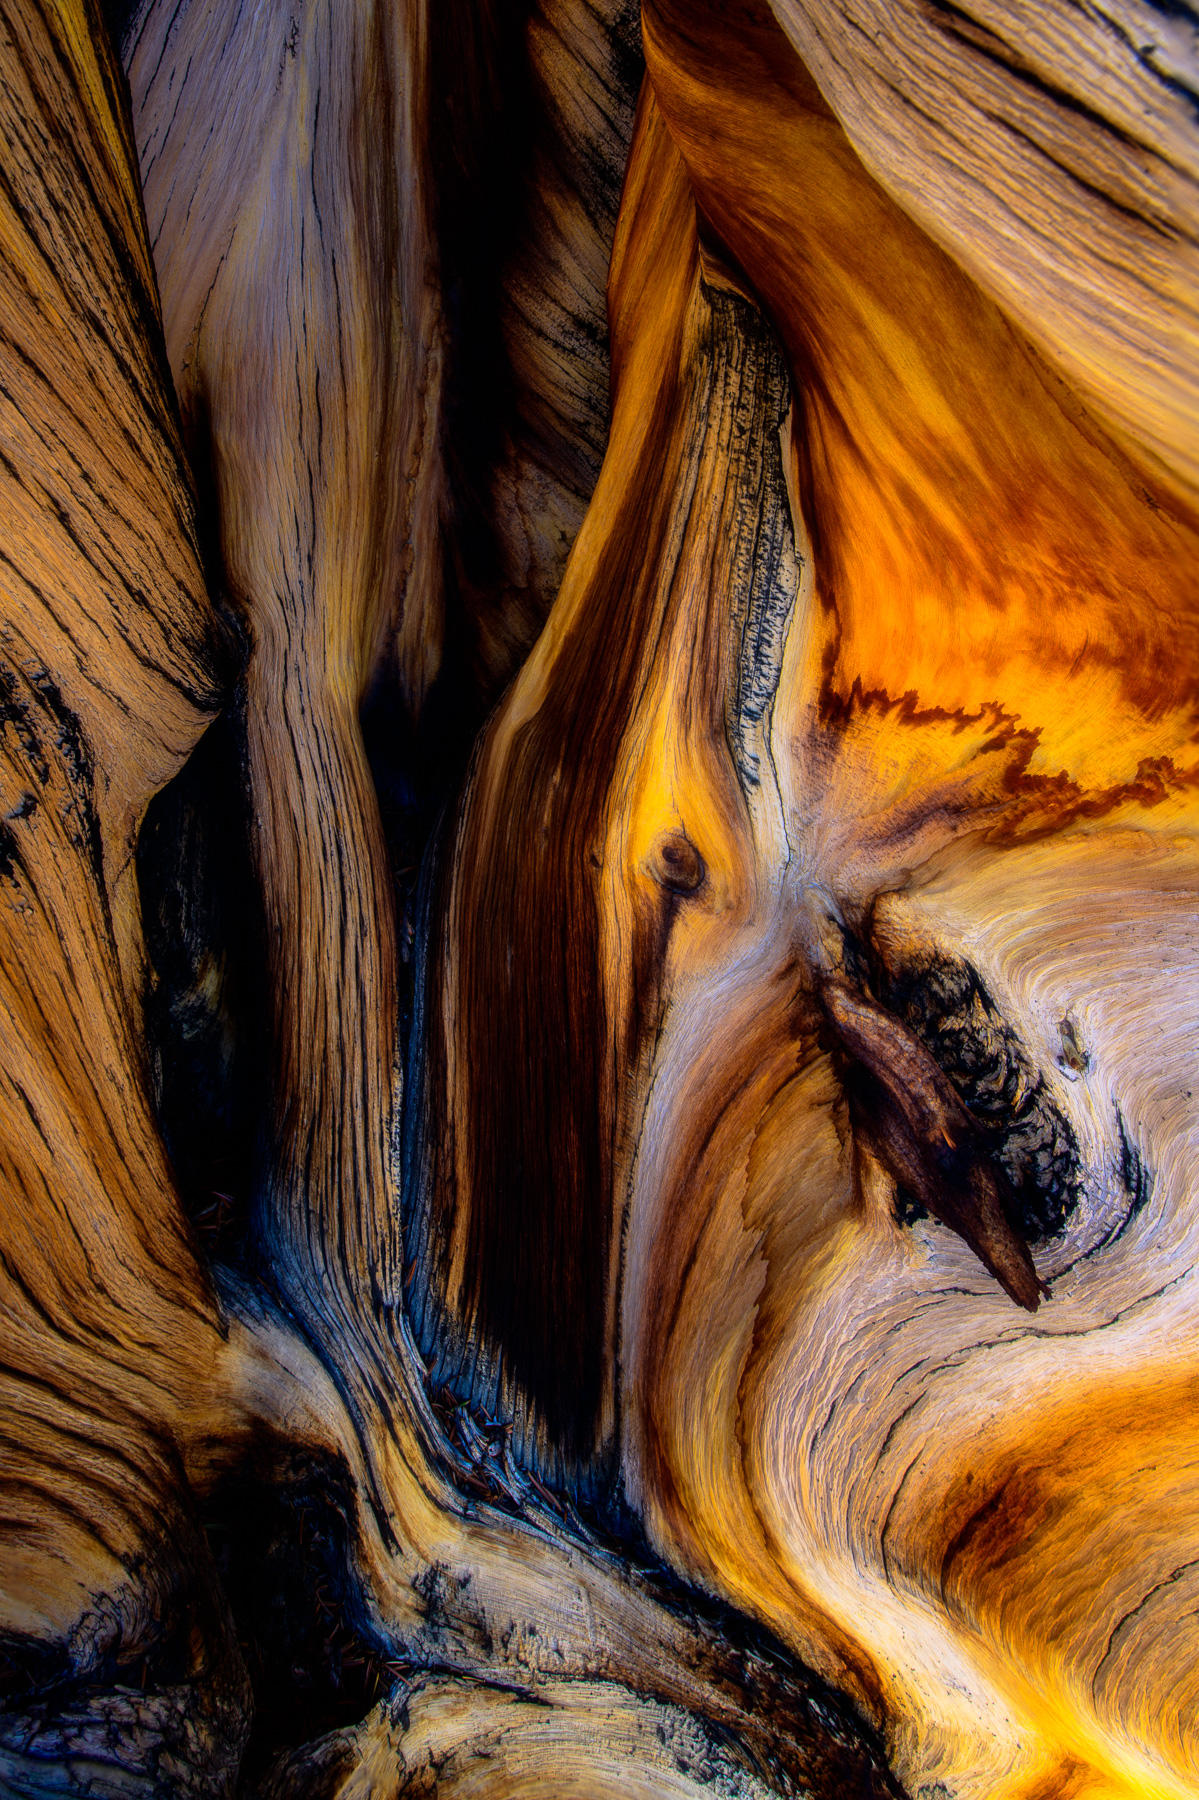 Detail of weathered ancient Bristlecone Tree, White Mountains, California